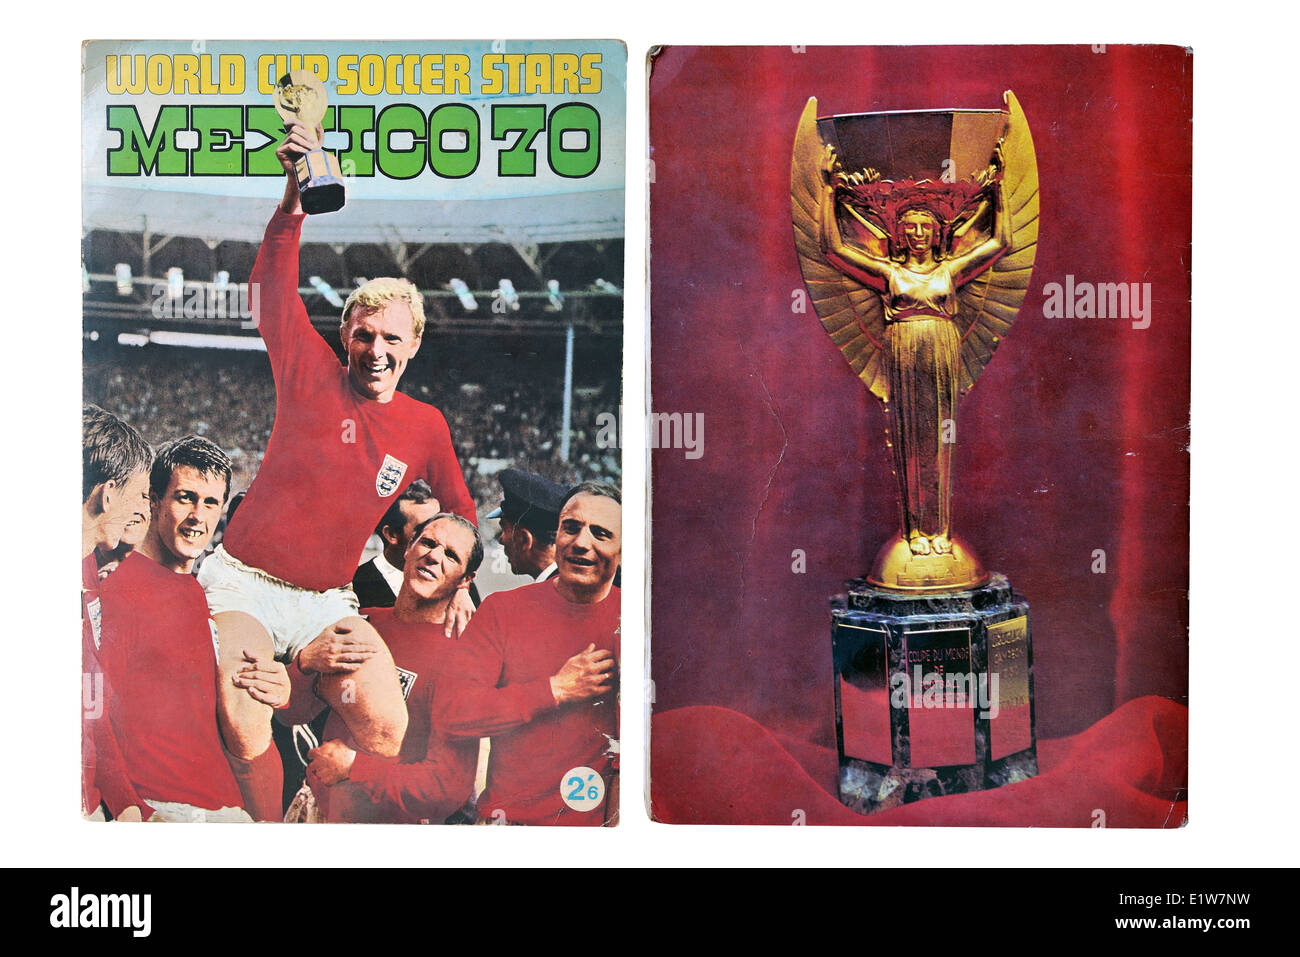 World Cup Mexico 1970 Football soccer player card collection album front cover - Stock Image